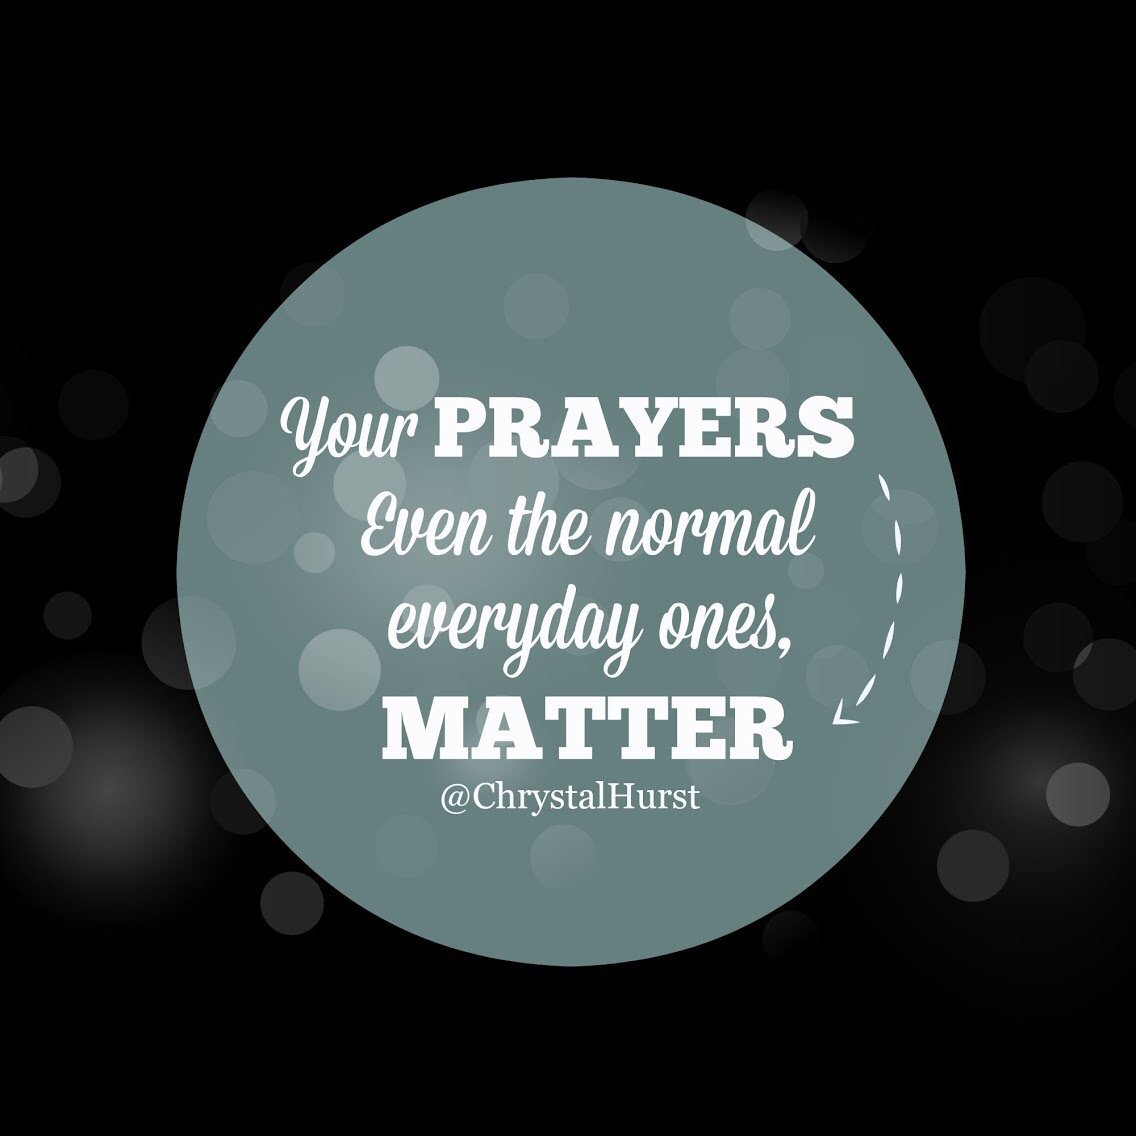 Your prayers matter - even the normal ones.